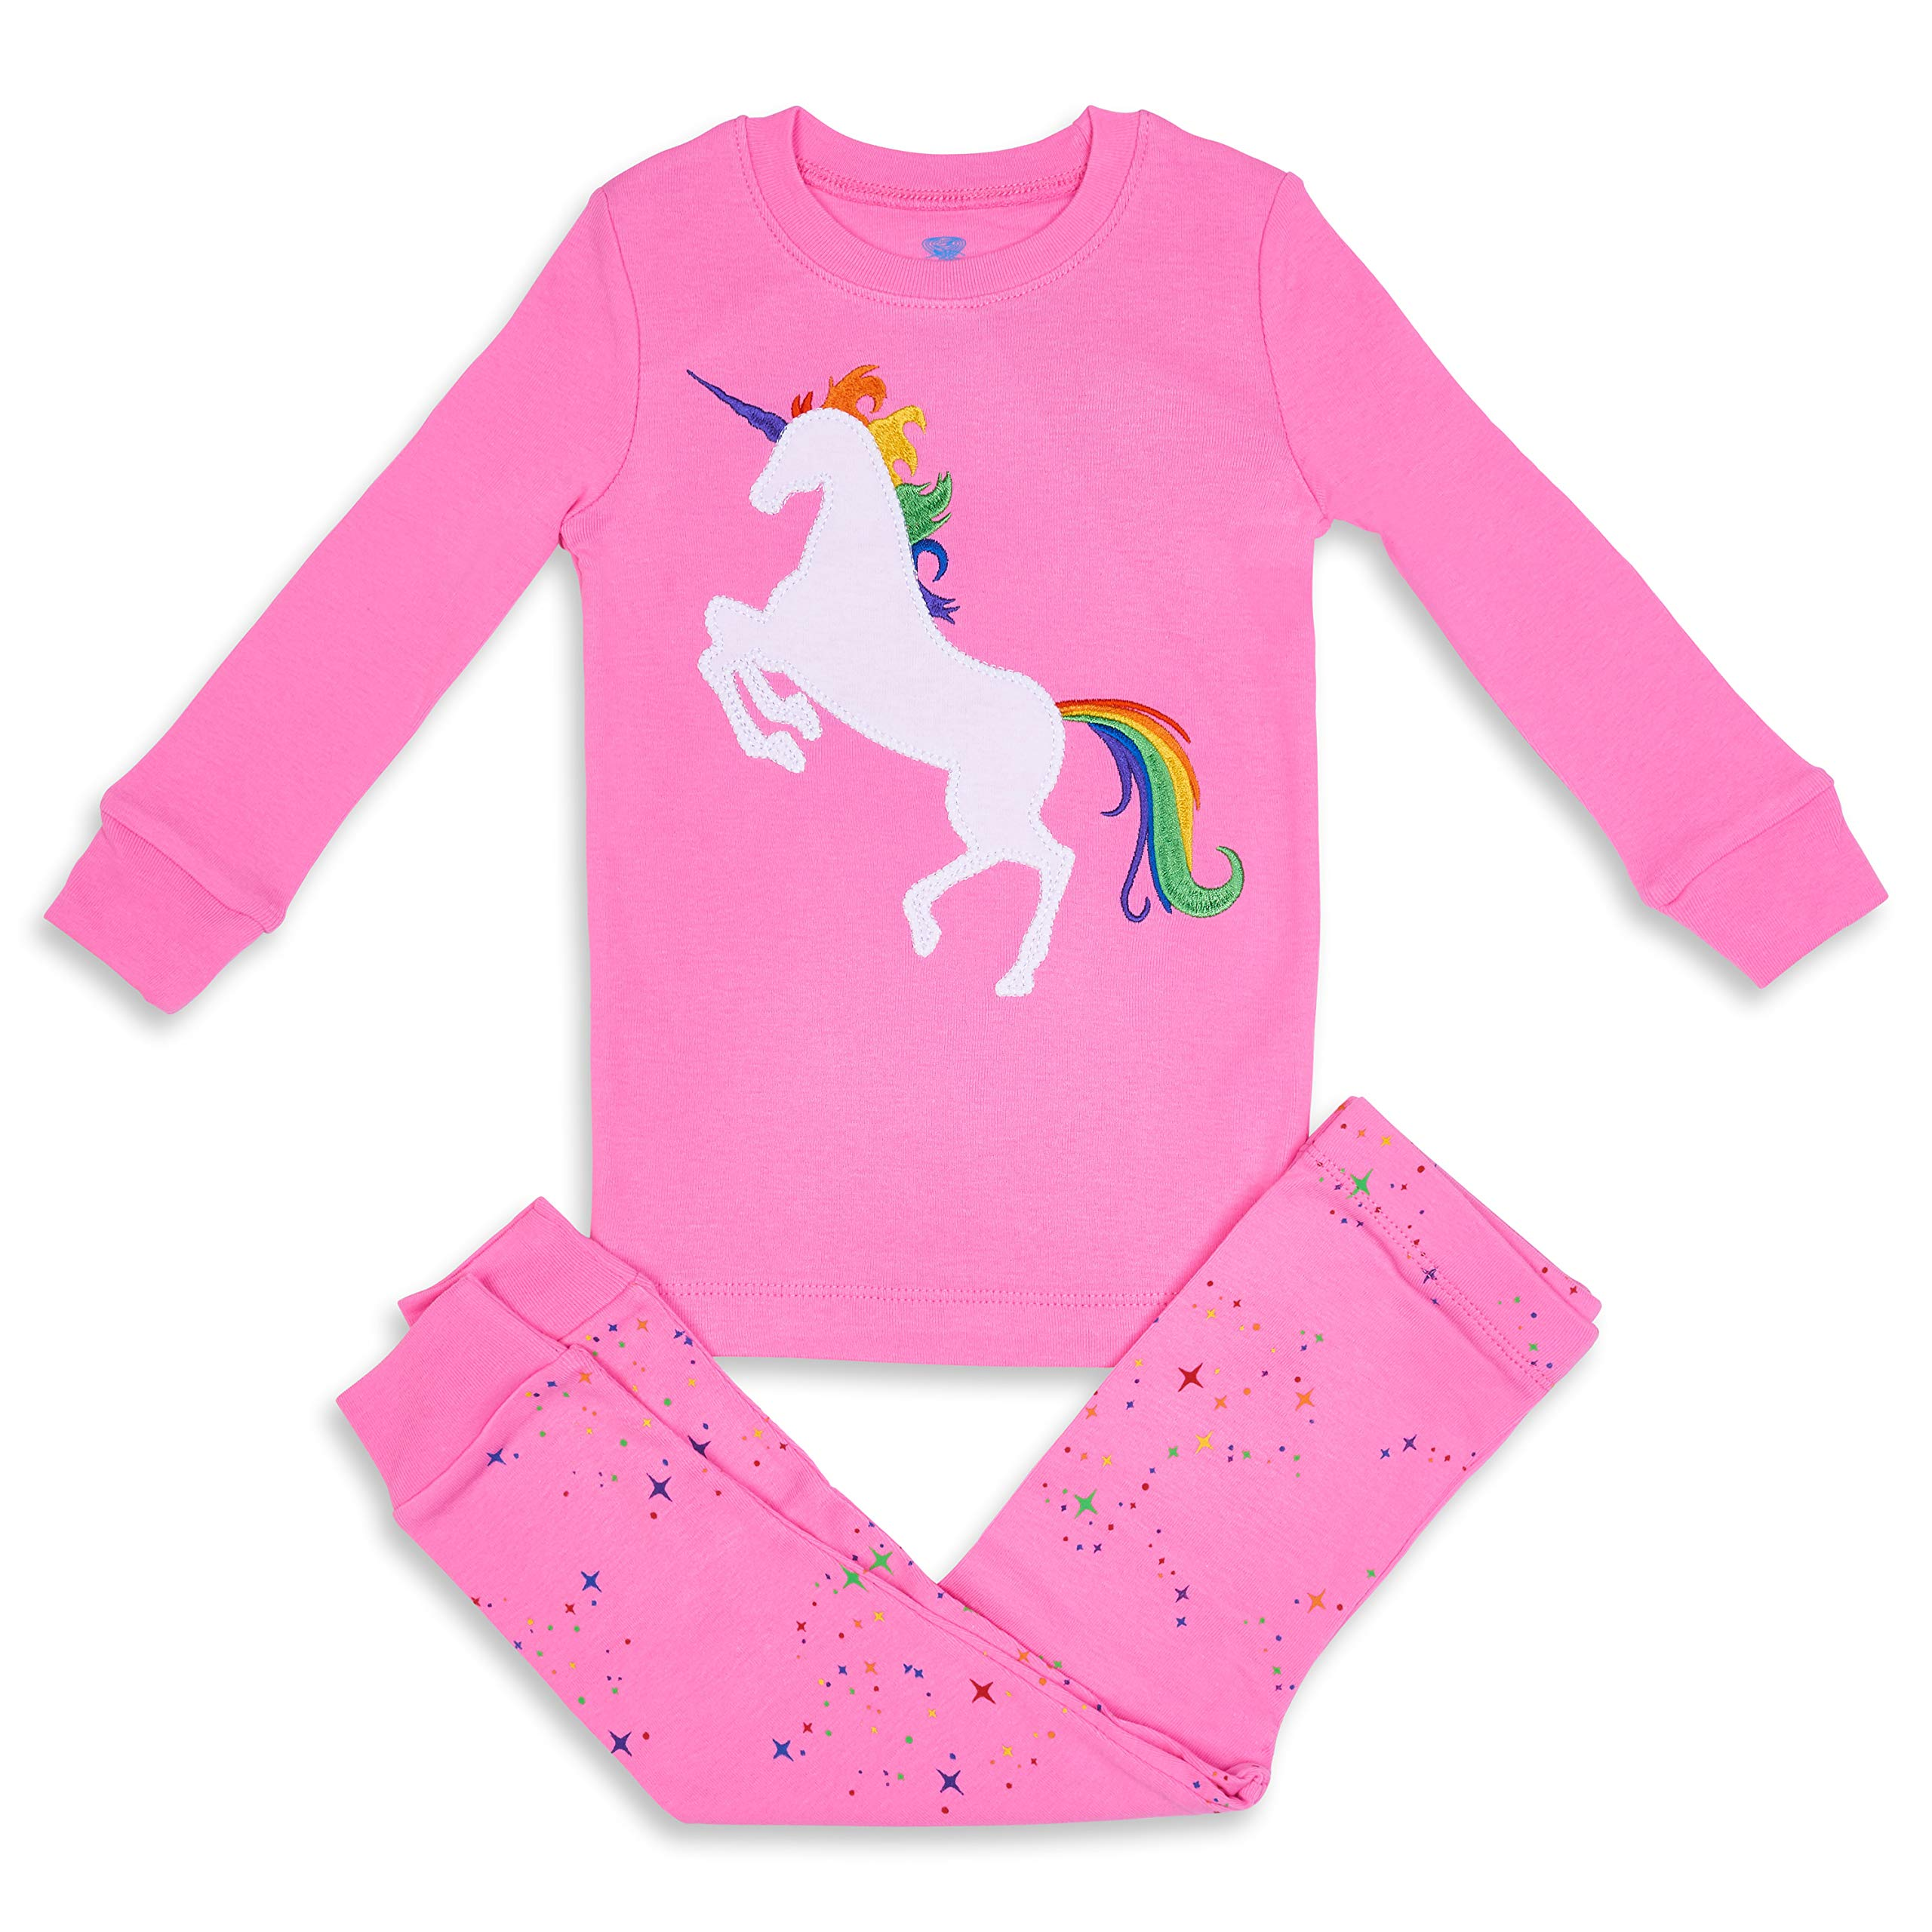 Girls Pajamas Unicorn Pegasus Lips 2 Piece 100% Super Soft Cotton (12m-8y) by Bluenido (Image #1)